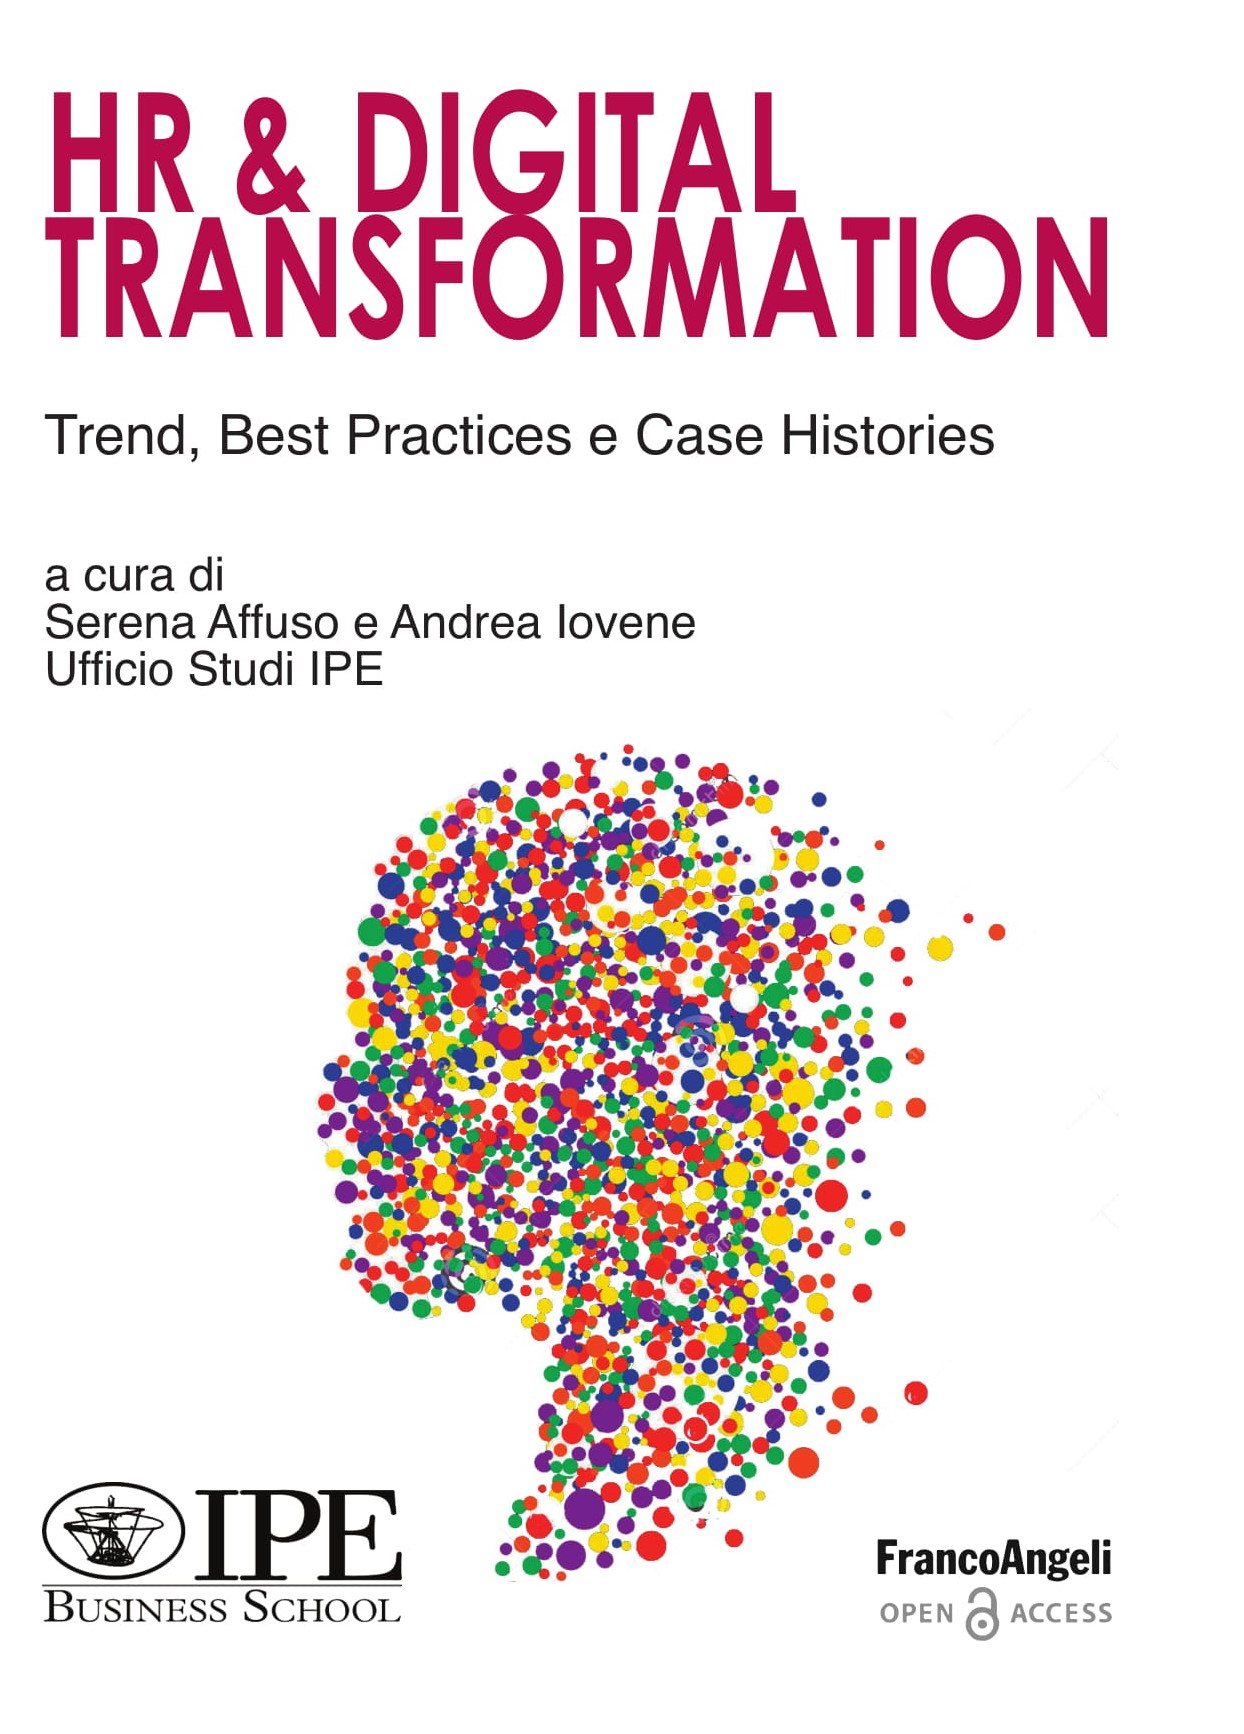 HR & Digital TransformationTrend, Best Practices e Case Histories